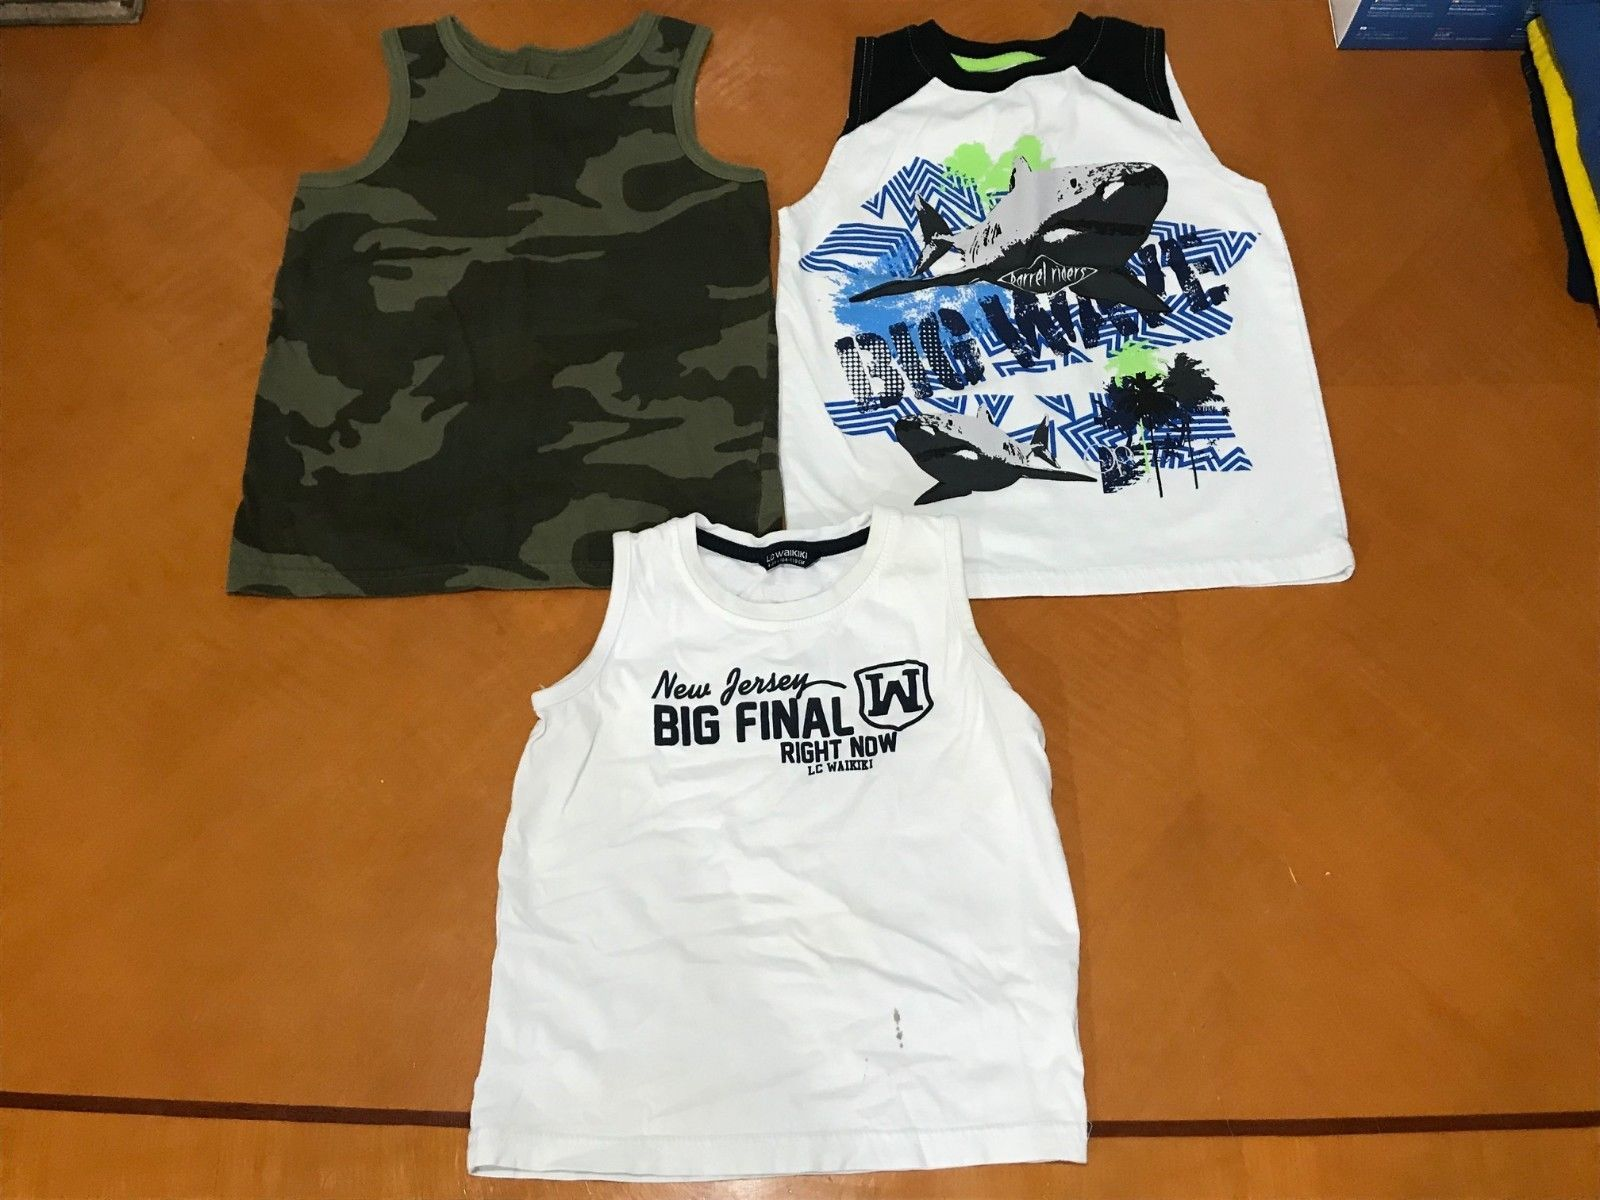 ebd8a7745f07f Lot of 3 Baby Boys Toddlers OP Faded Glory and 34 similar items